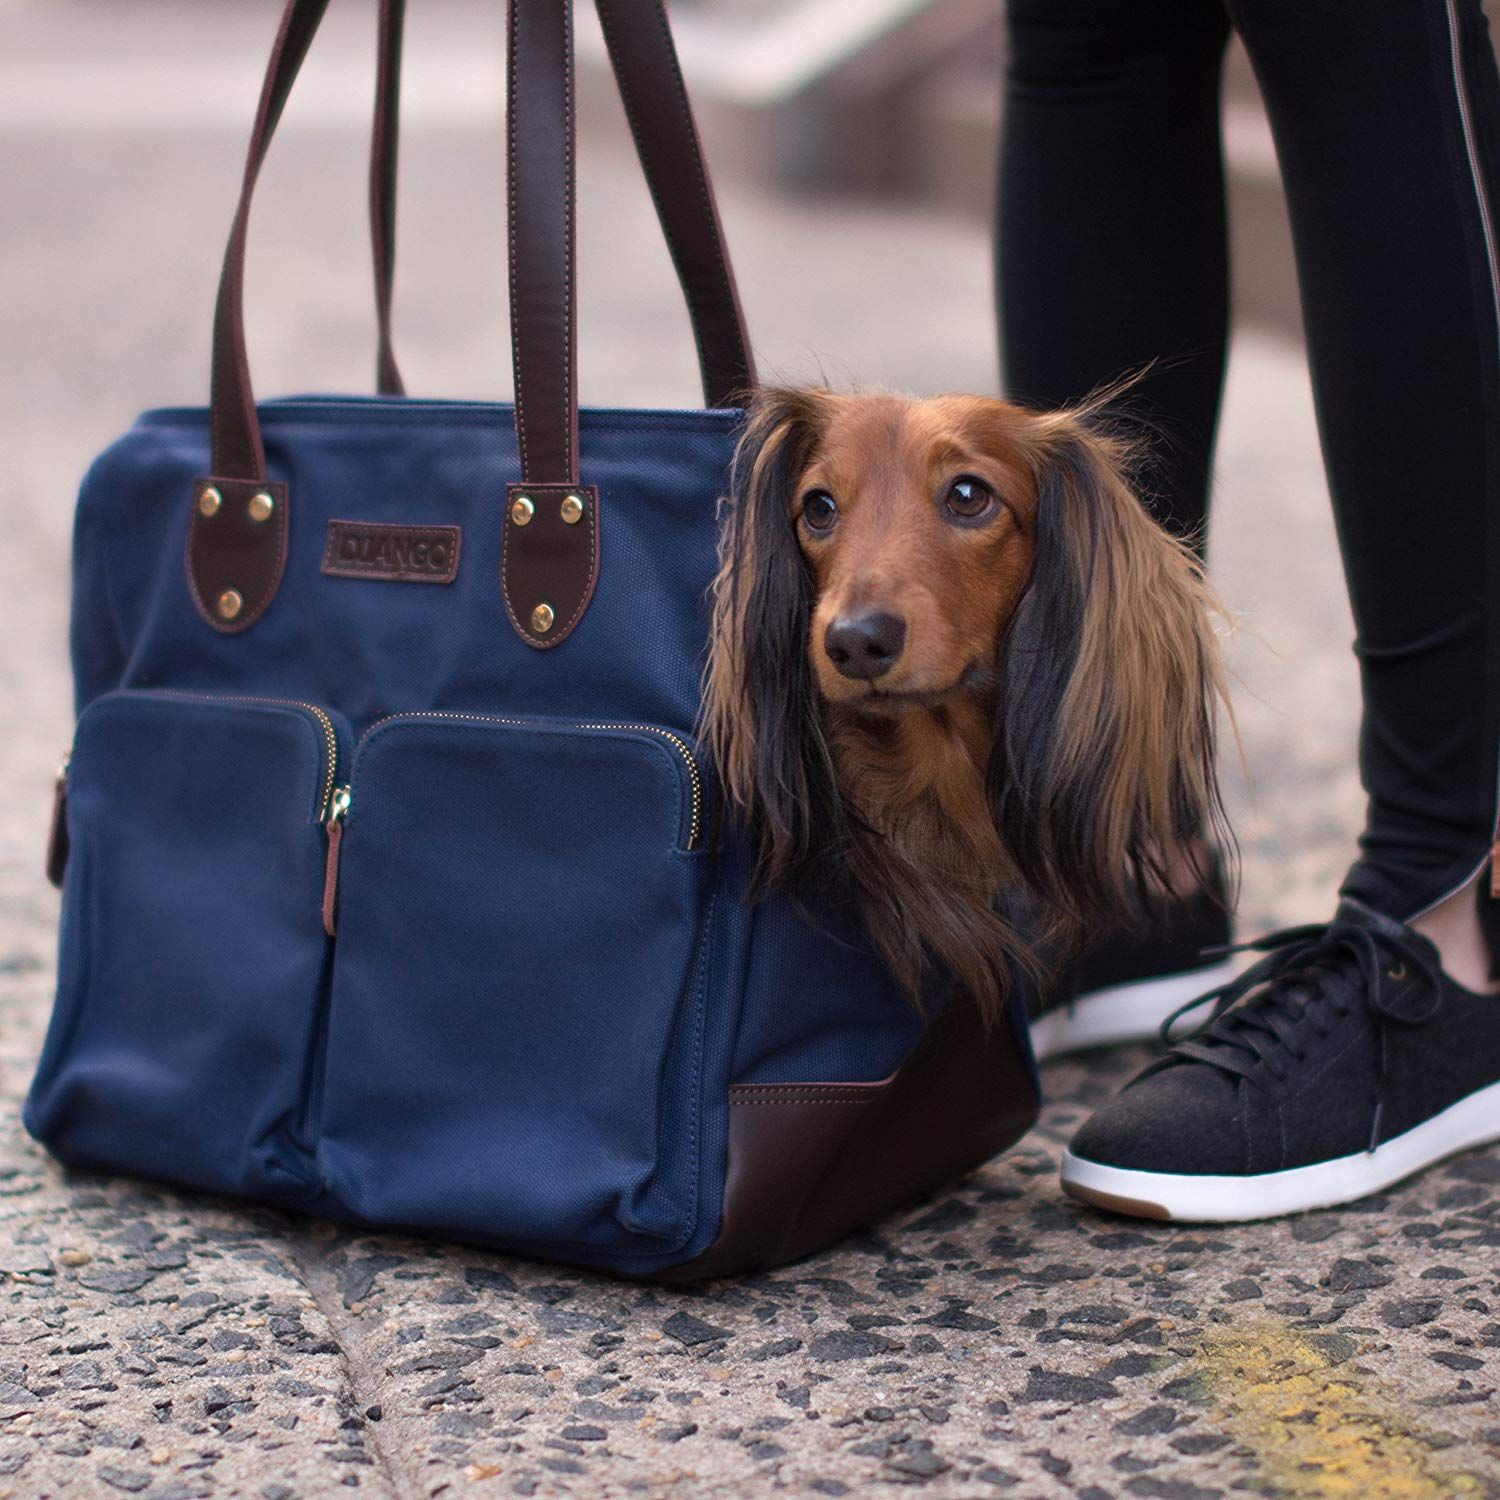 Dachshund Accessories For Dogs Dachshund Central Dog Carrier Bag Dachshund Accessories Puppy Bag